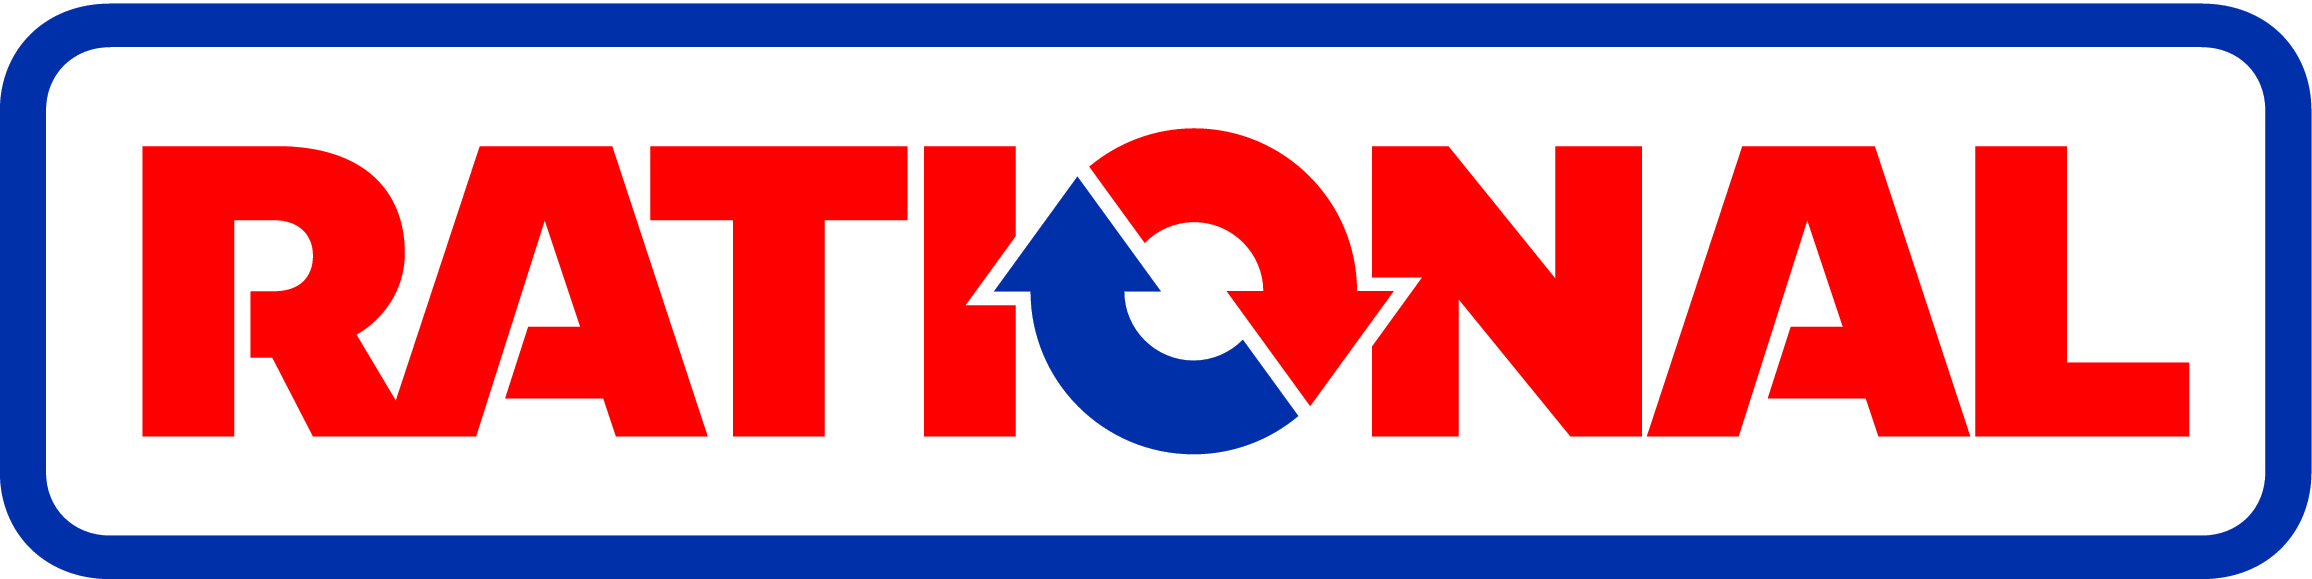 logo_RATIONAL_large.jpg